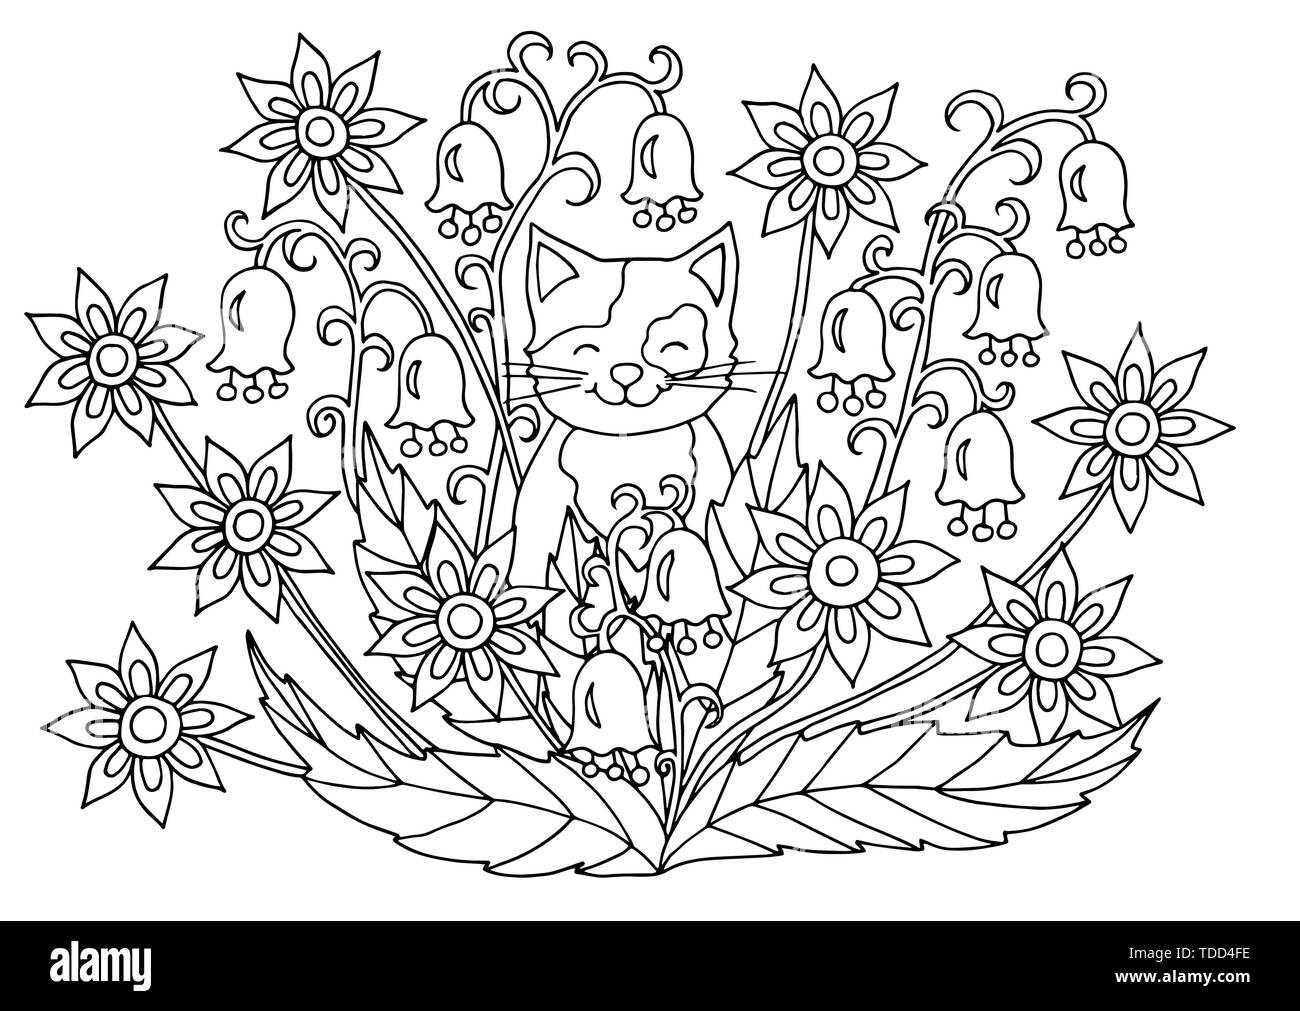 Coloriage Adulte Ete.Coloring Book Page For Both Kids And Adults Photos